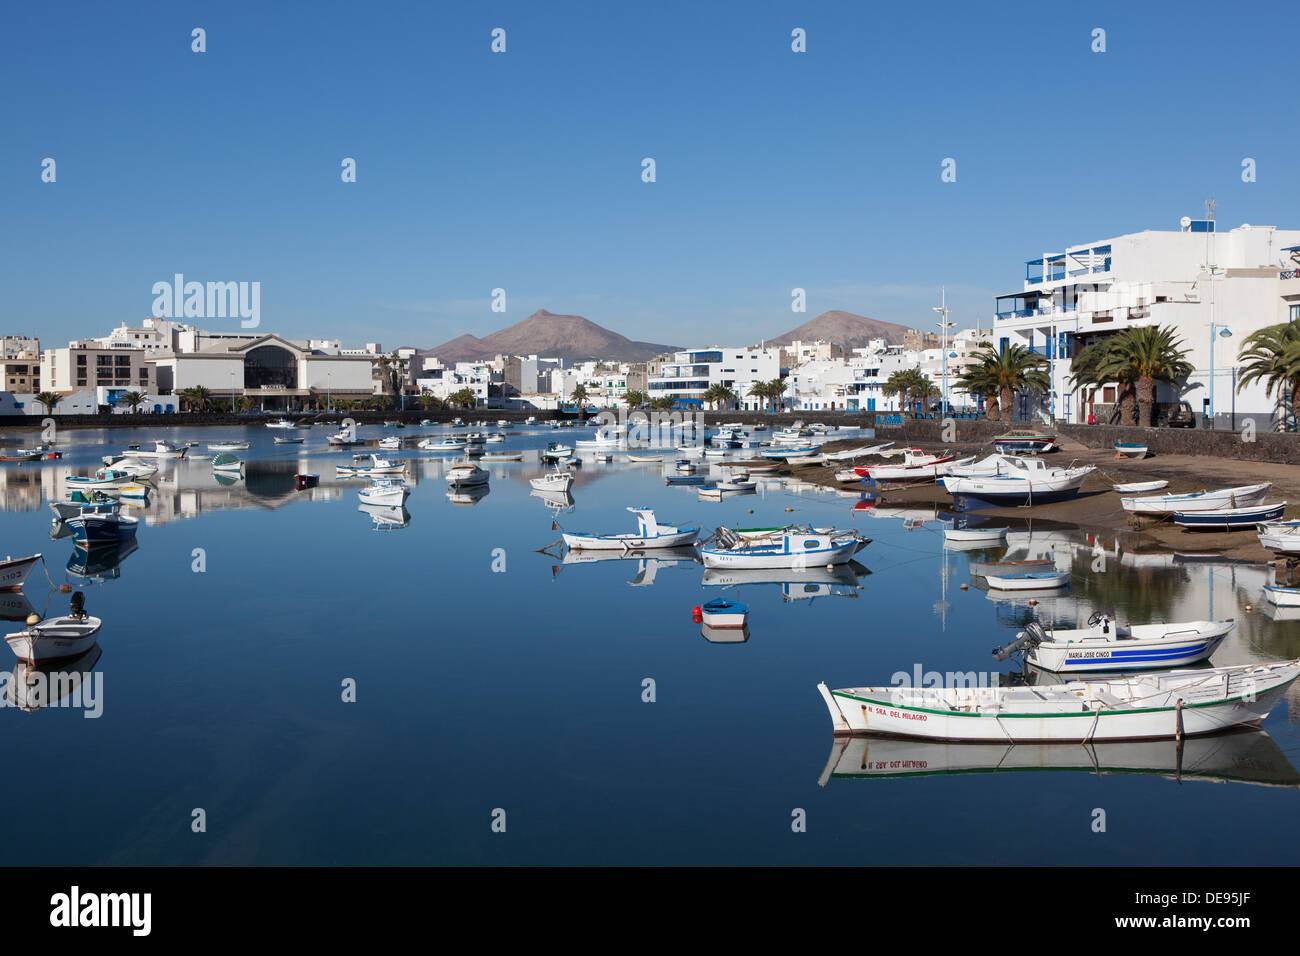 The marina in the city of Arrecife on Lanzarote - Stock Image